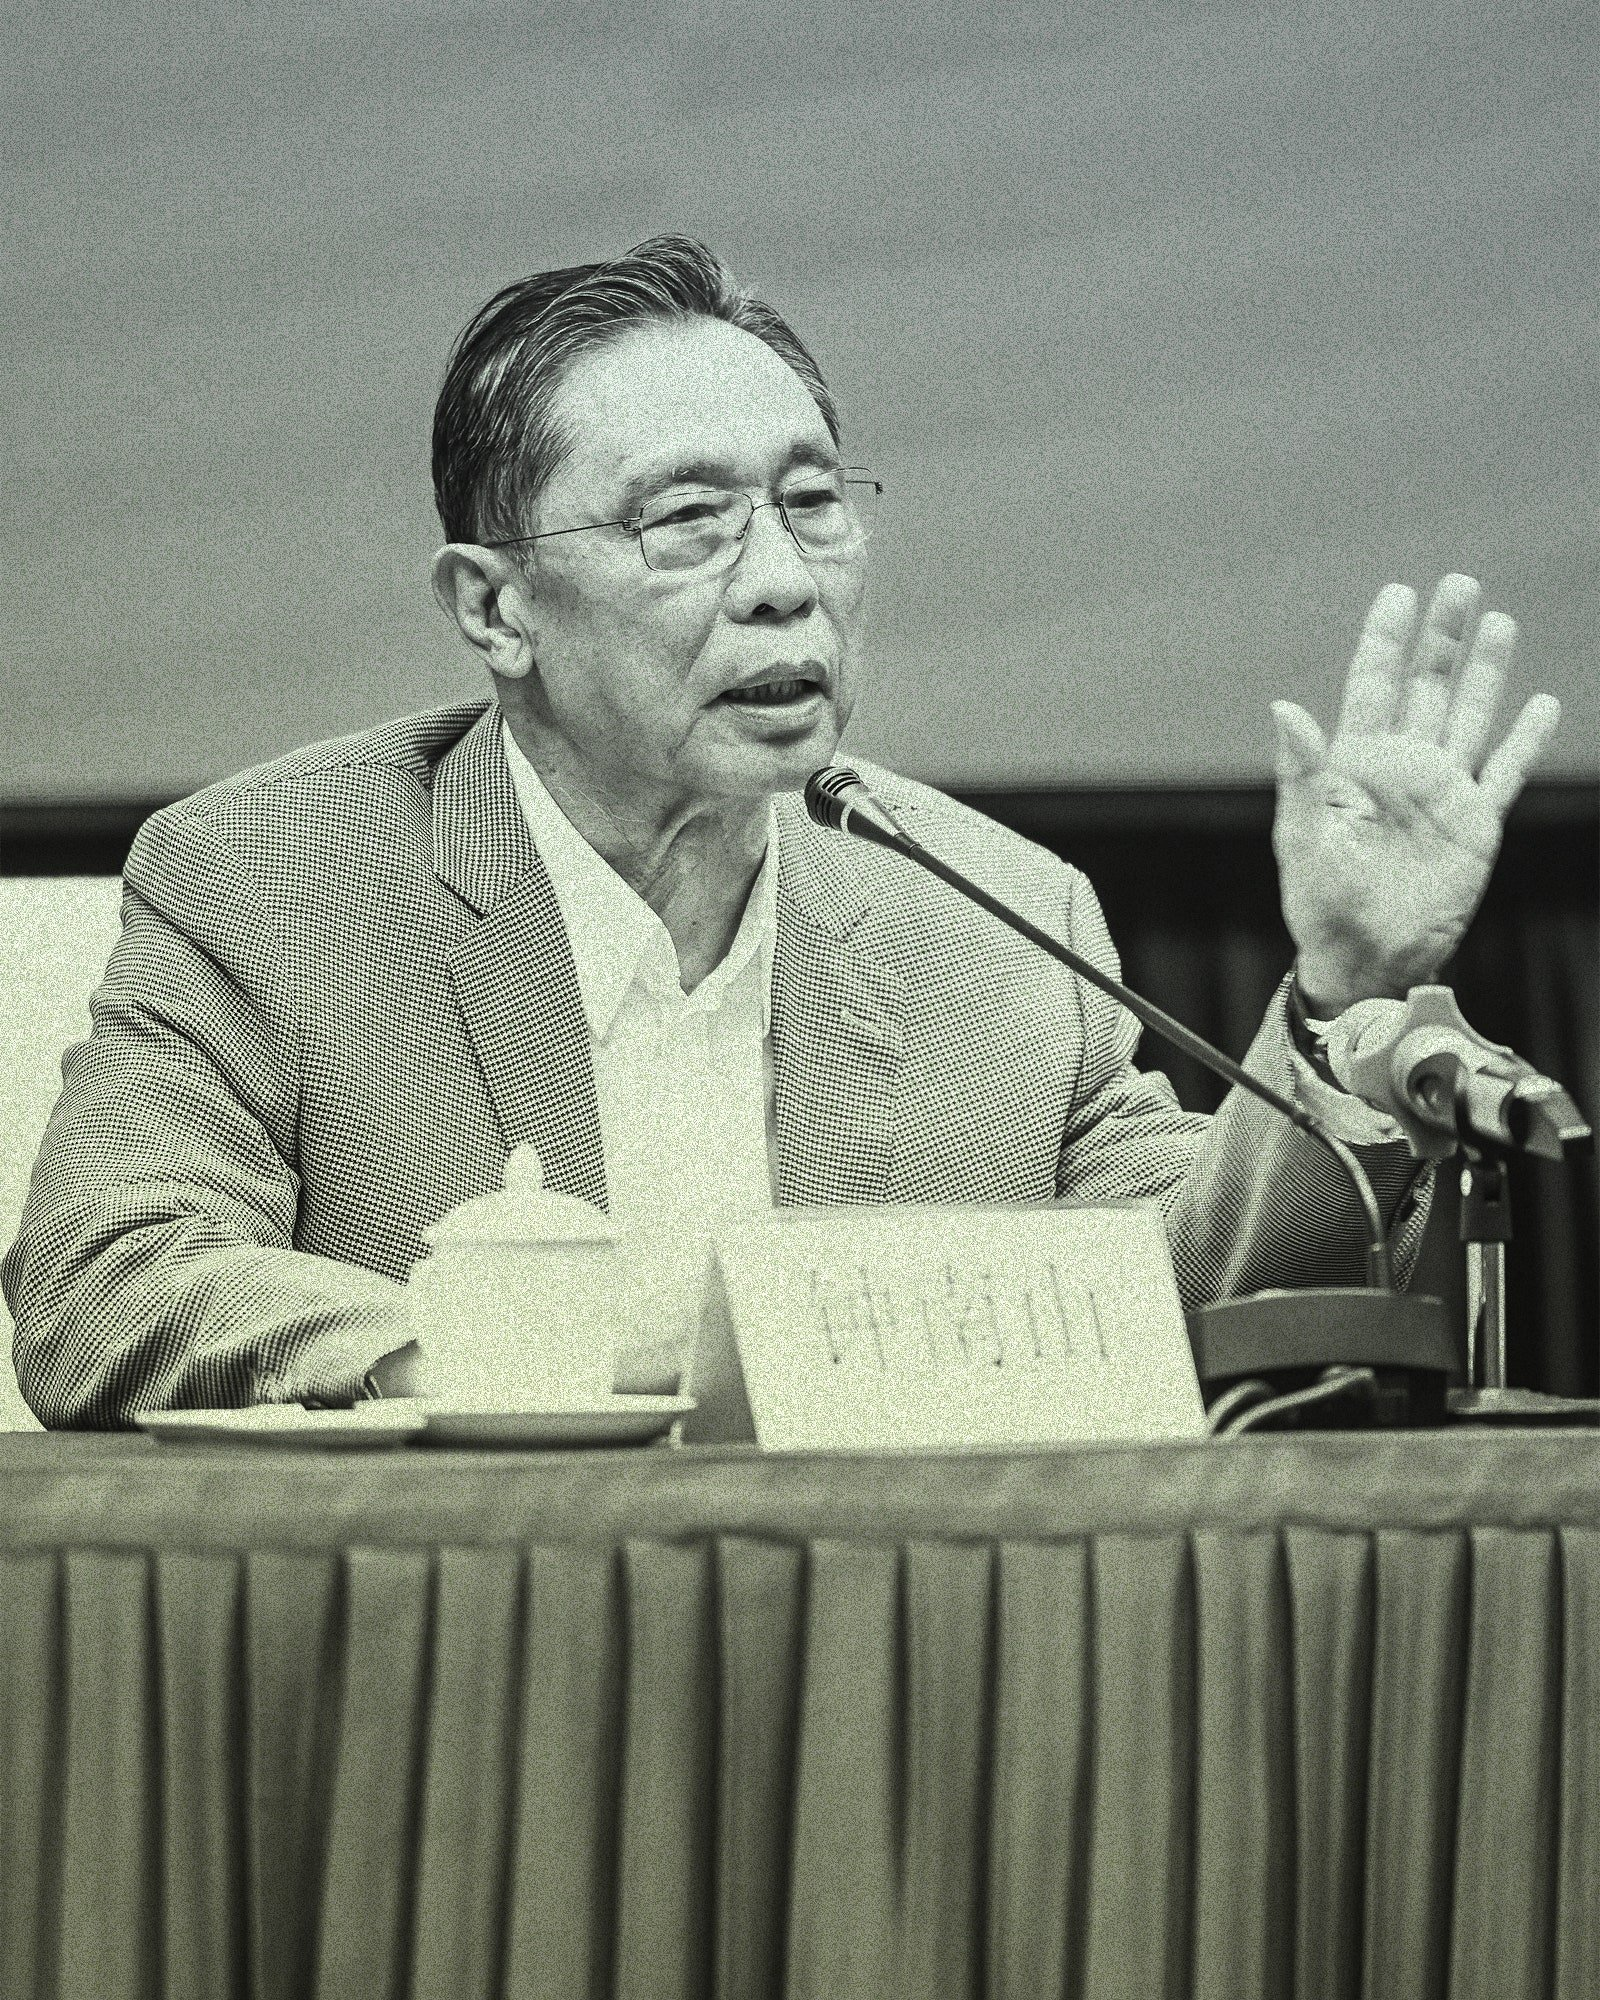 In 2012, the prominent pulmonologist Zhong Nanshan consulted on a case of miners who fell ill after digging bat feces out of a cave in Mojiang county. Their symptoms of cough, fever, and labored breathing recalled the 2002 SARS outbreak but also foreshadowed the COVID-19 pandemic.From TPG/Getty Images.